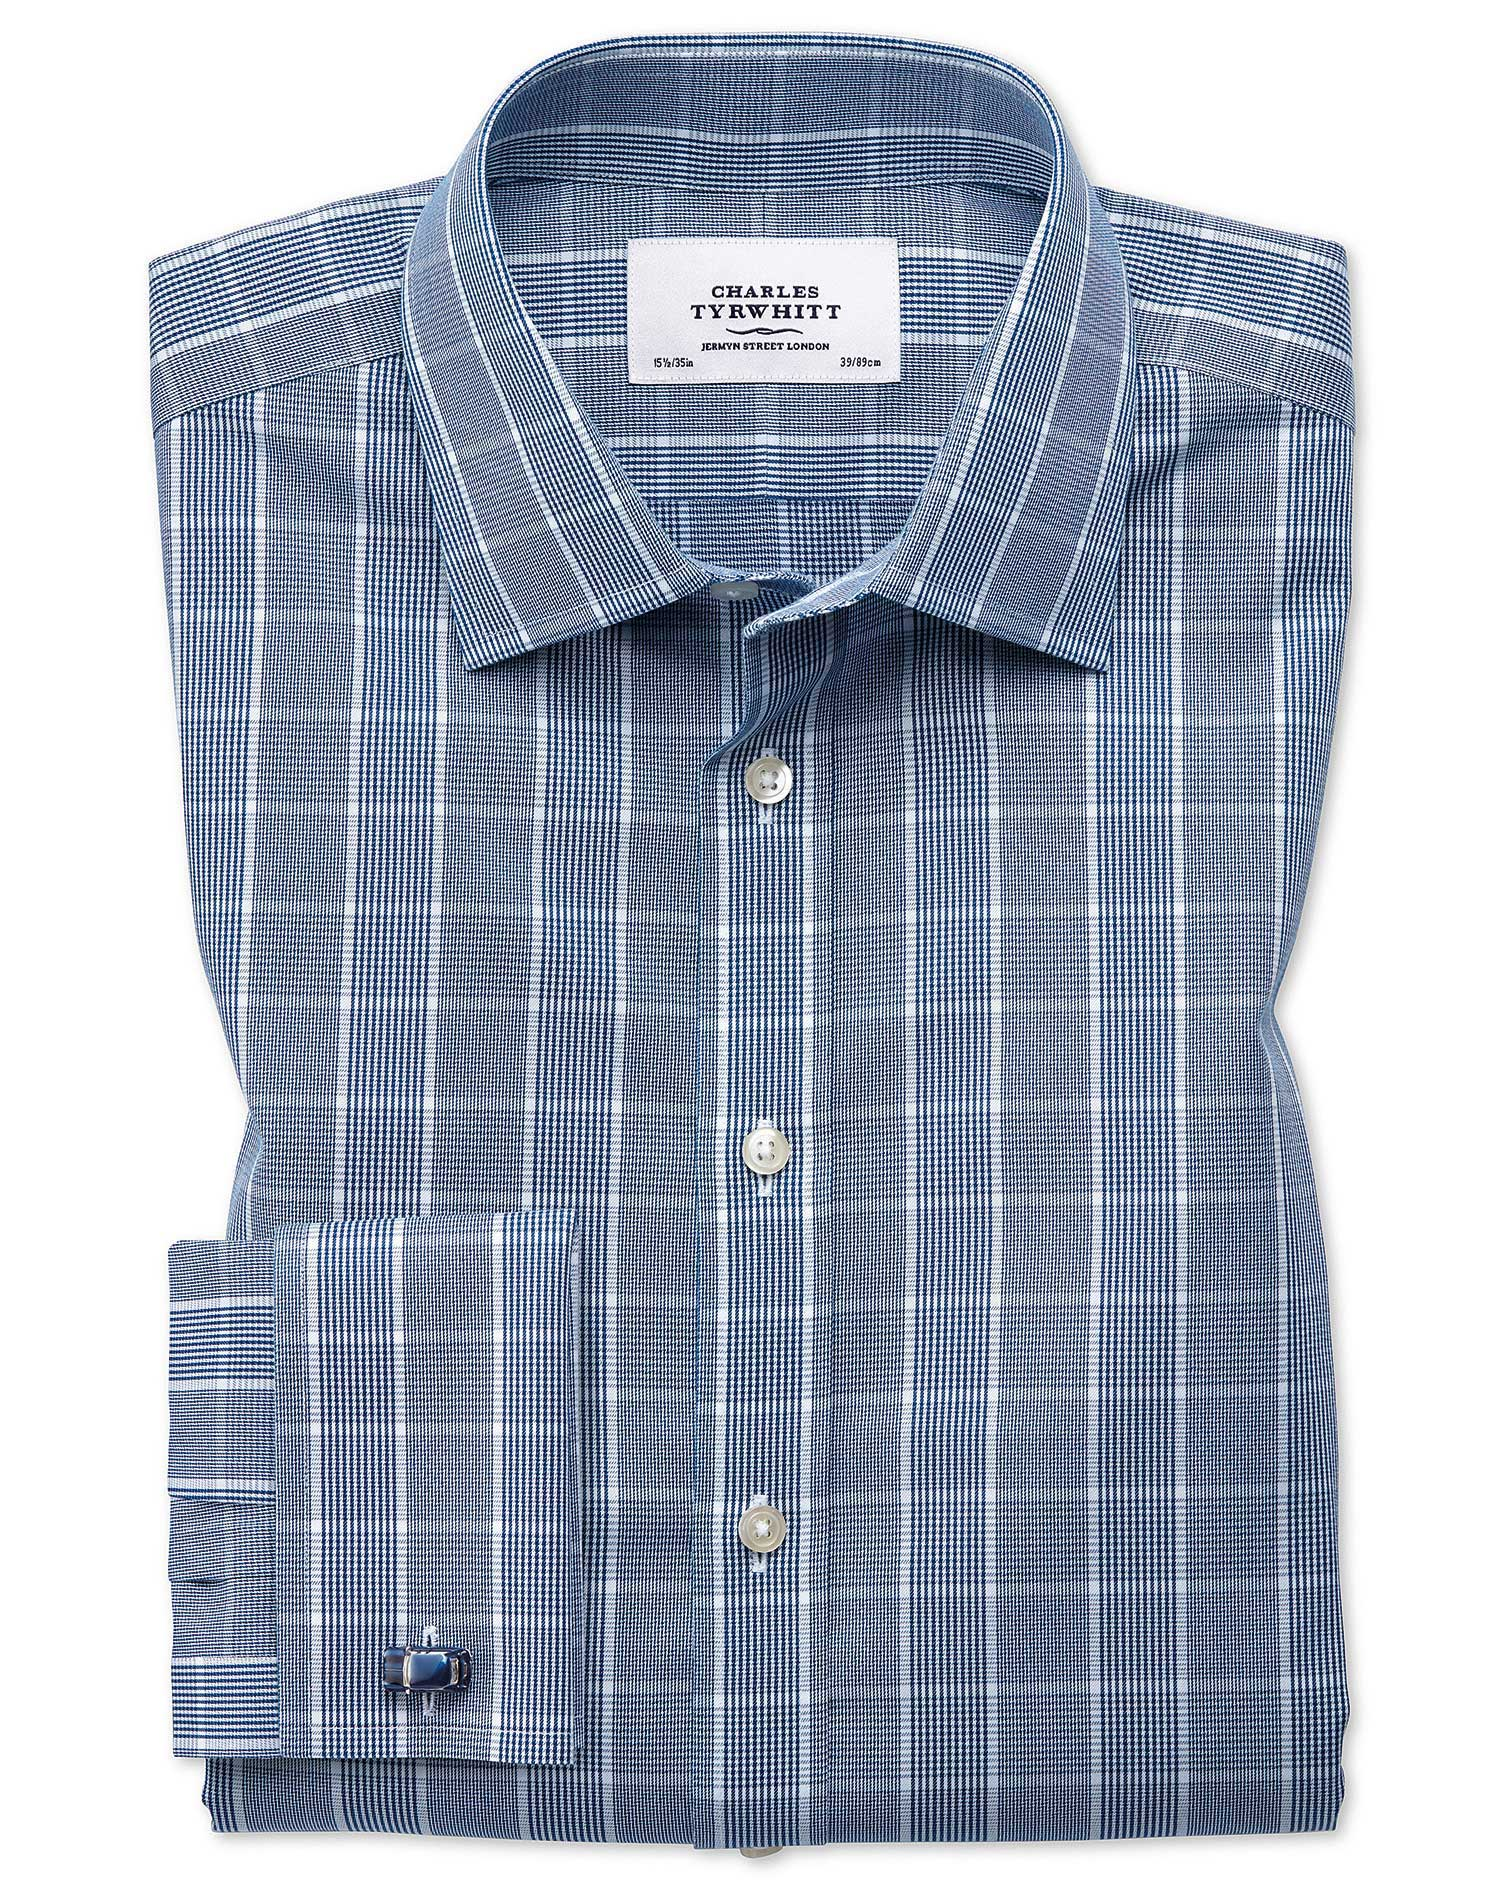 Slim Fit Non-Iron Prince Of Wales Navy Blue and White Cotton Formal Shirt Single Cuff Size 15/33 by